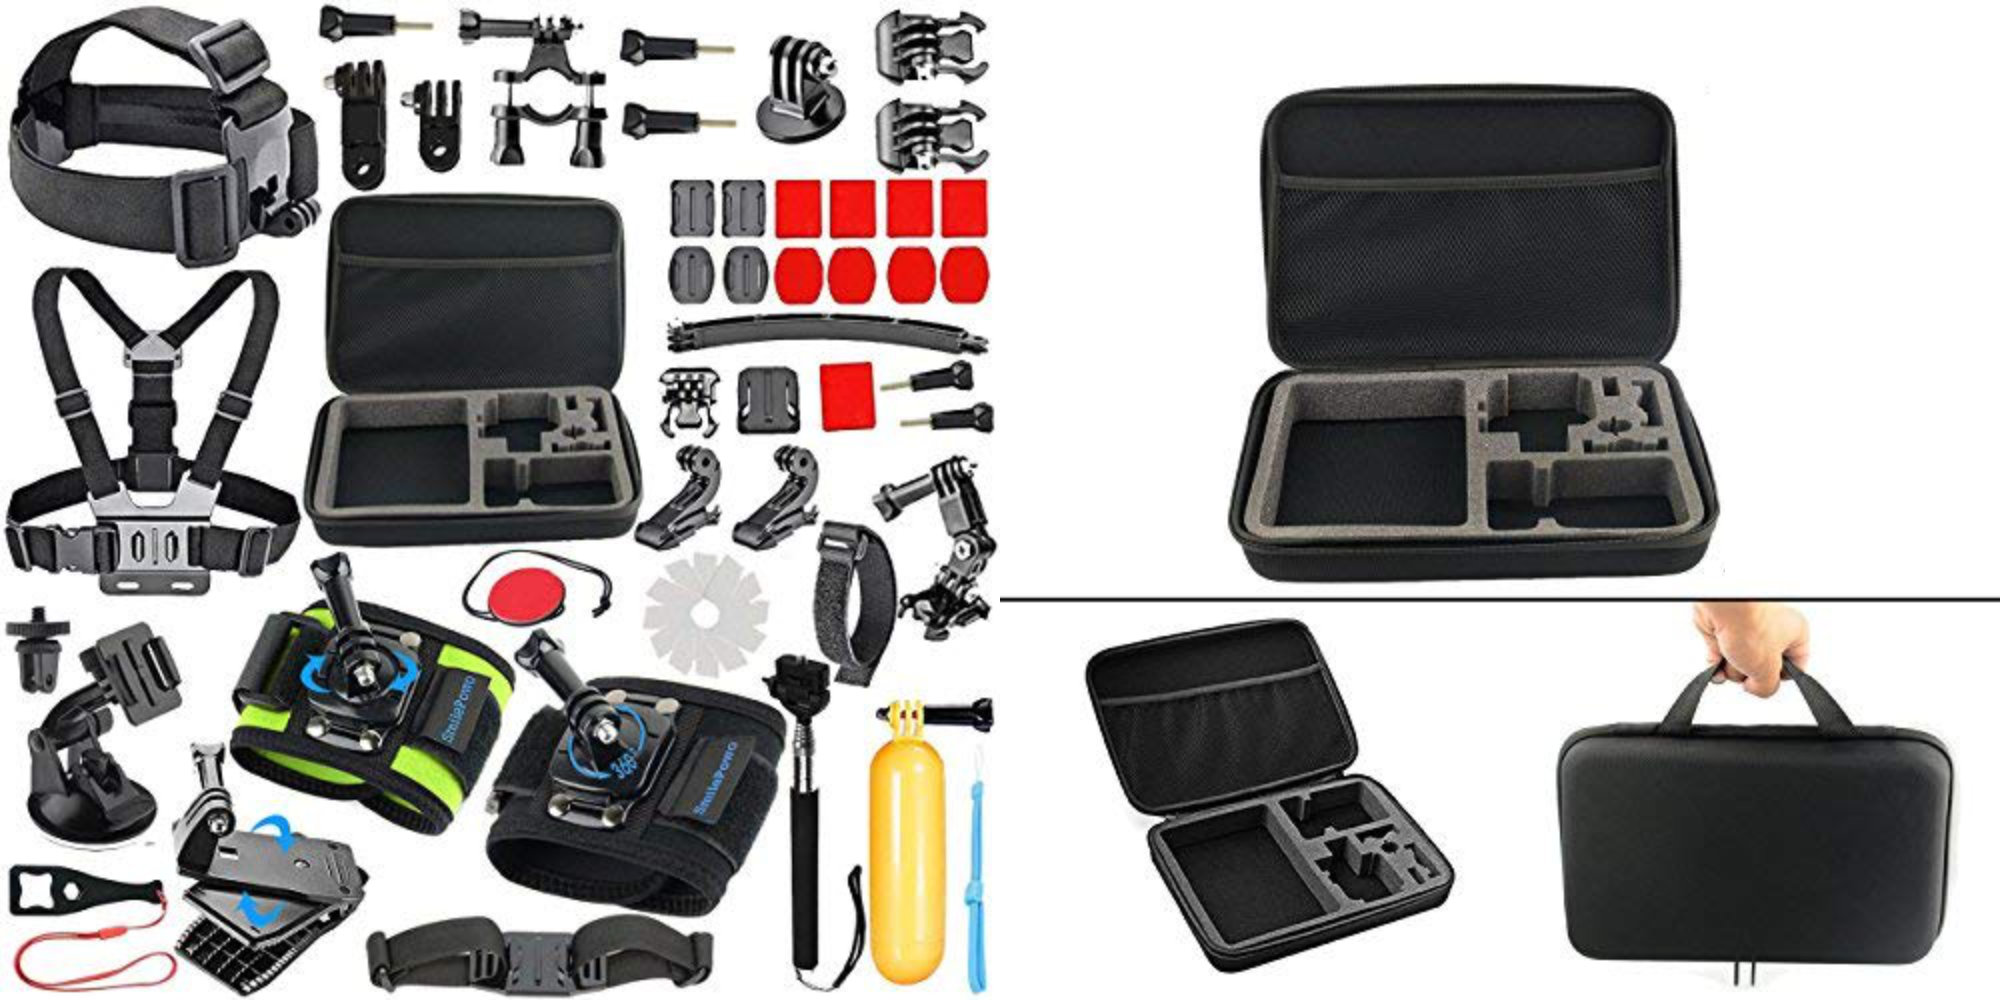 Keep your GoPro footage looking fresh w/ a 51-in-1 Accessory Kit for $17 shipped (40% off)